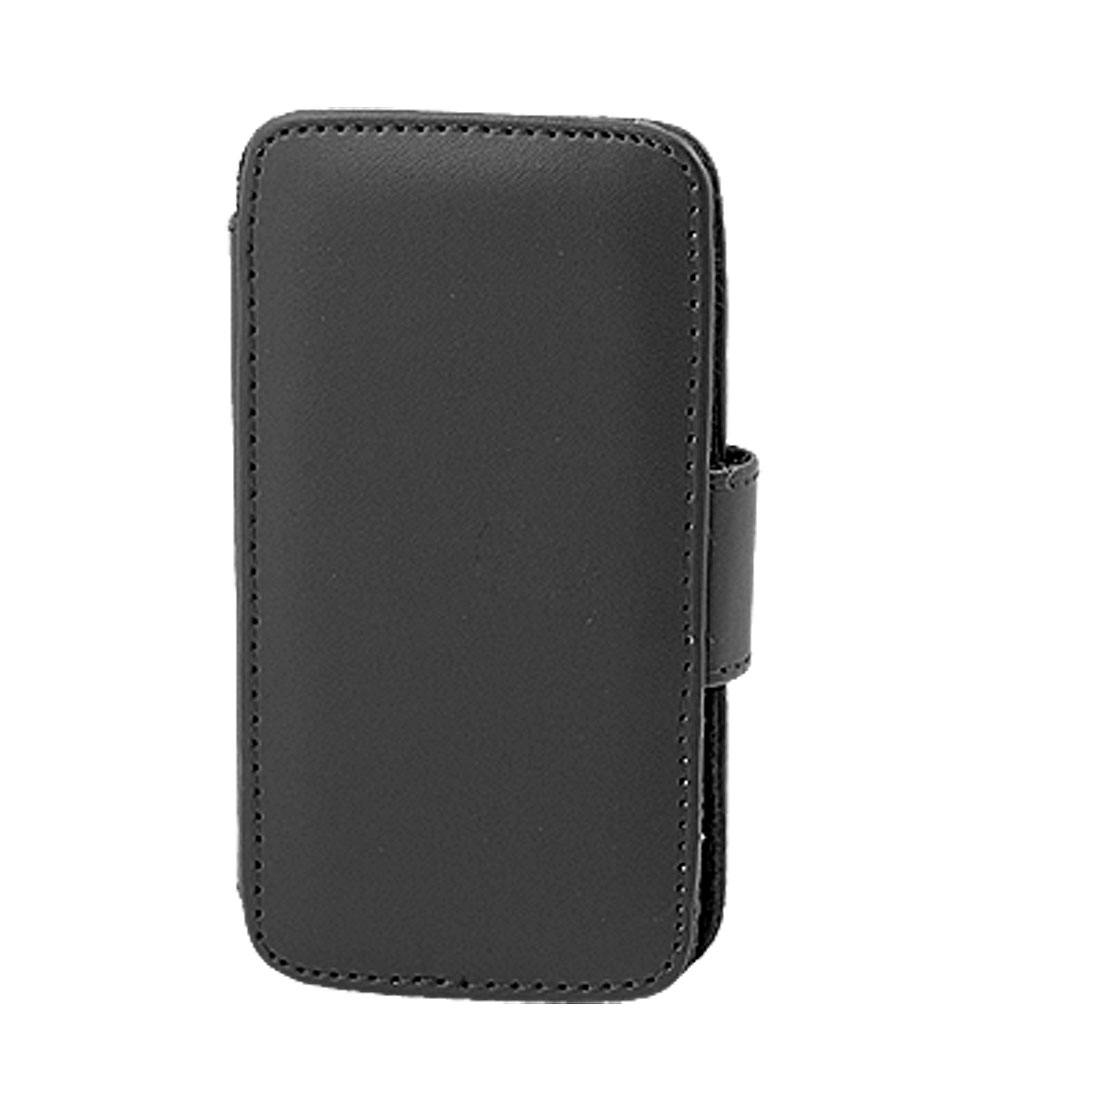 Black Faux Leather Magnetic Closure Case for iPhone 4 4G